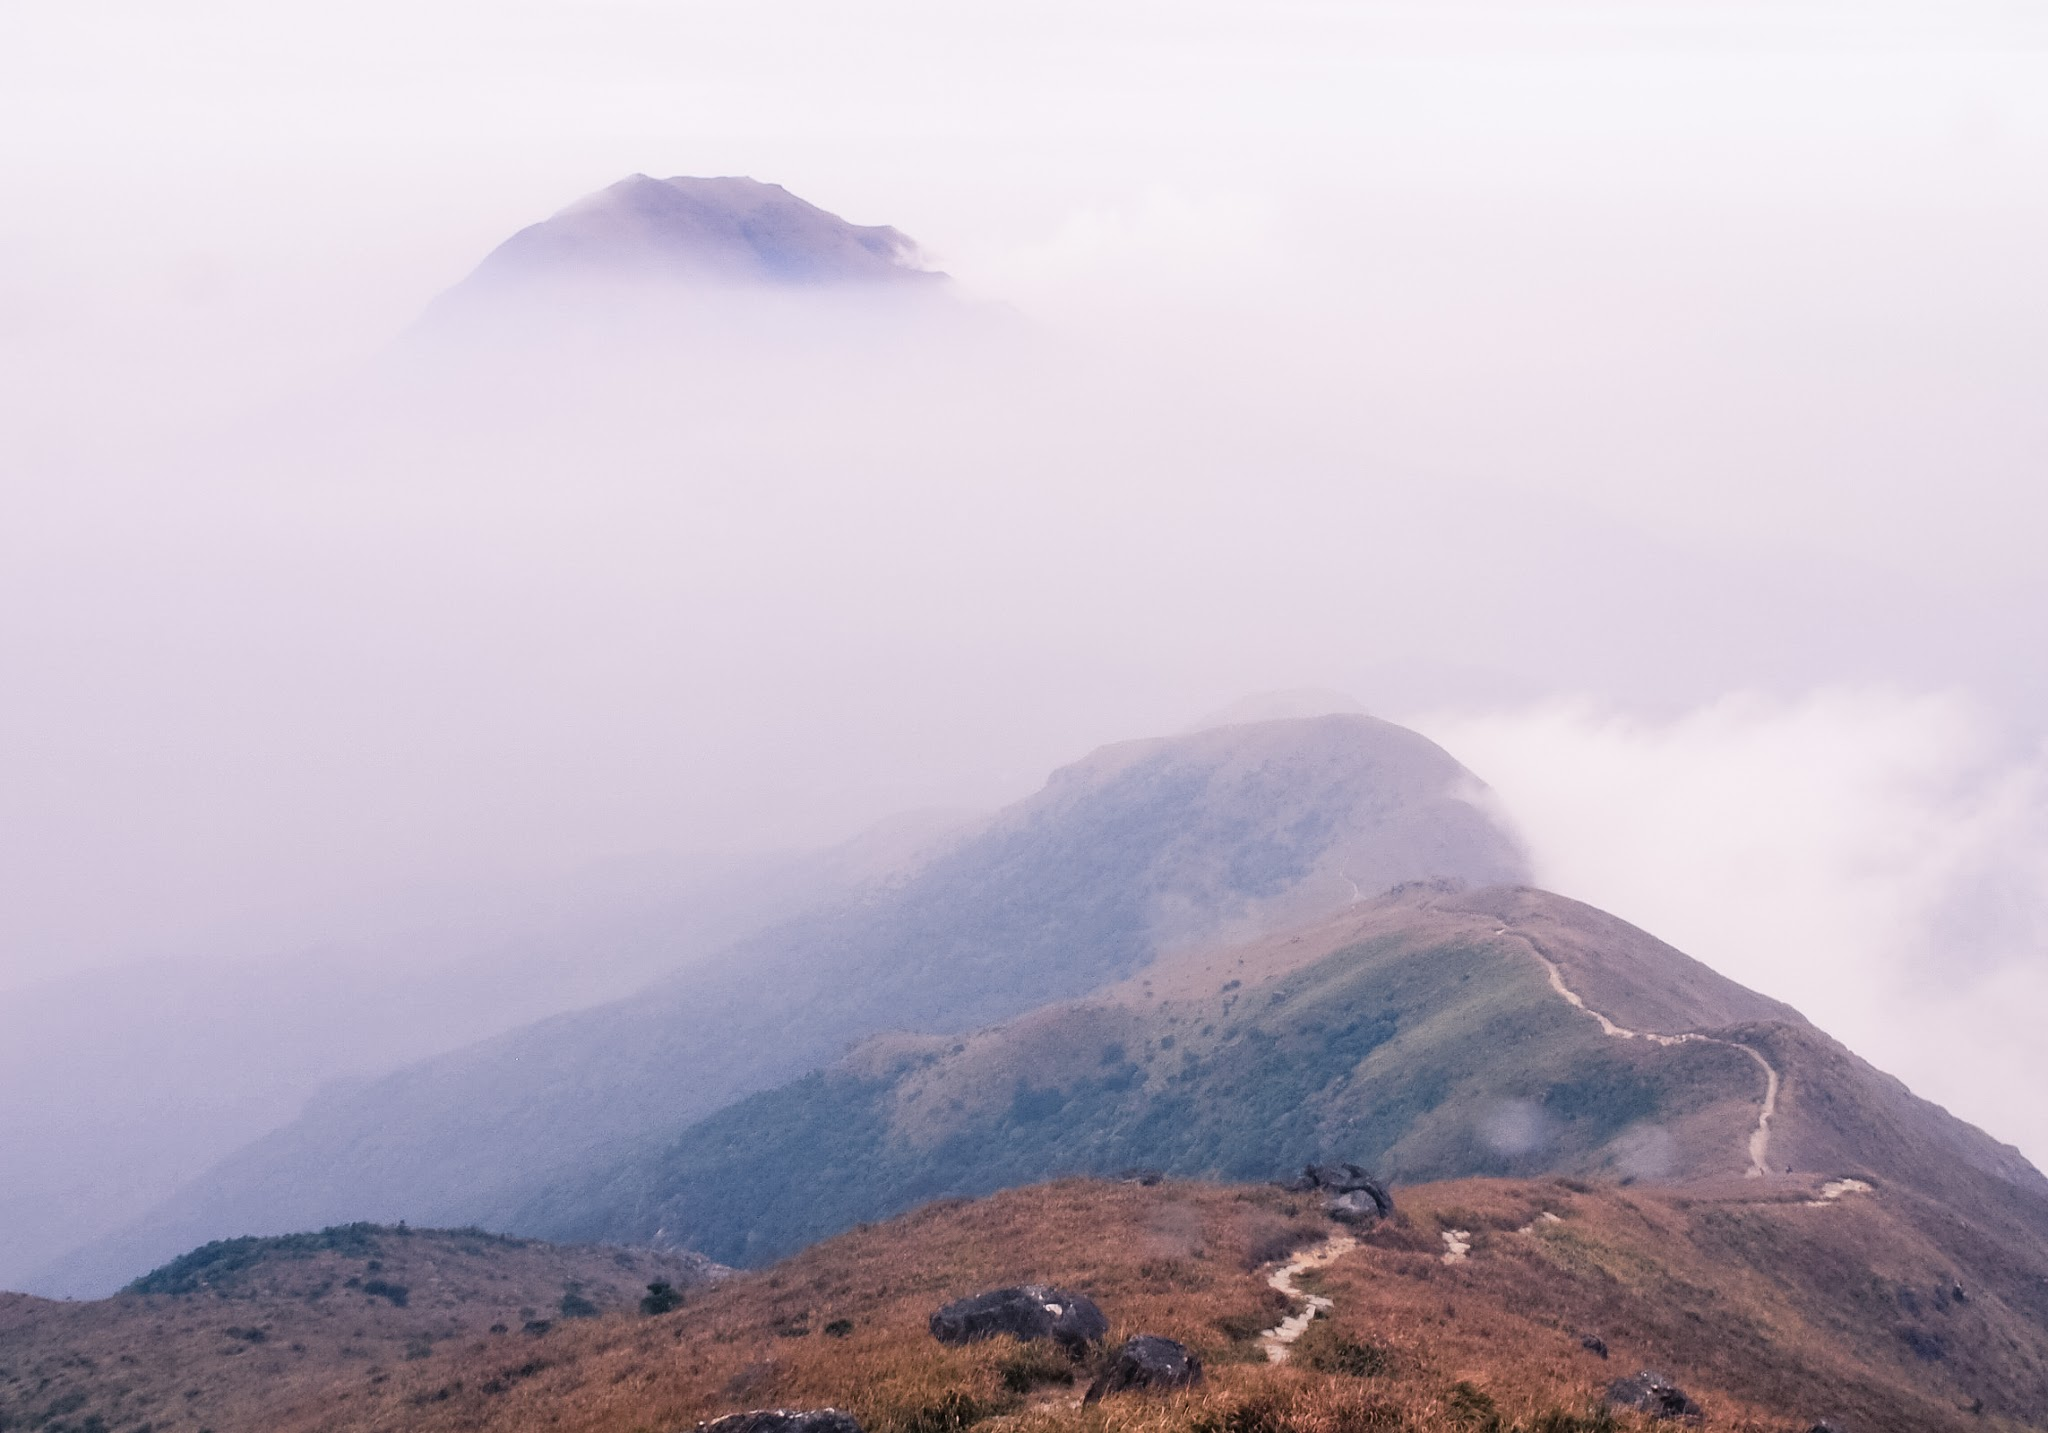 Lantau Peak on a cloudy day